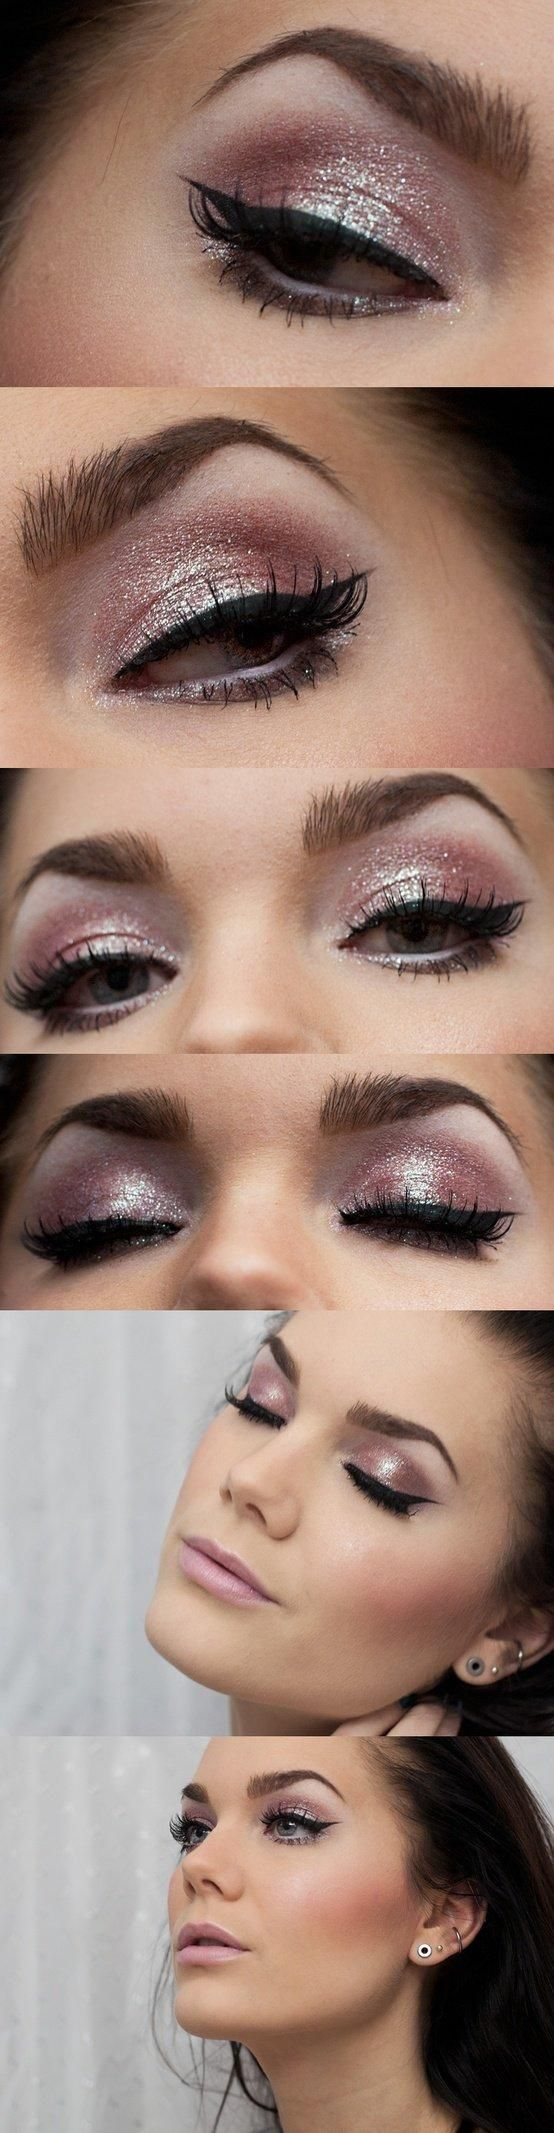 "Check out rana sultan's ""amazingggggggggg makeup "" Decalz @Lockerz"